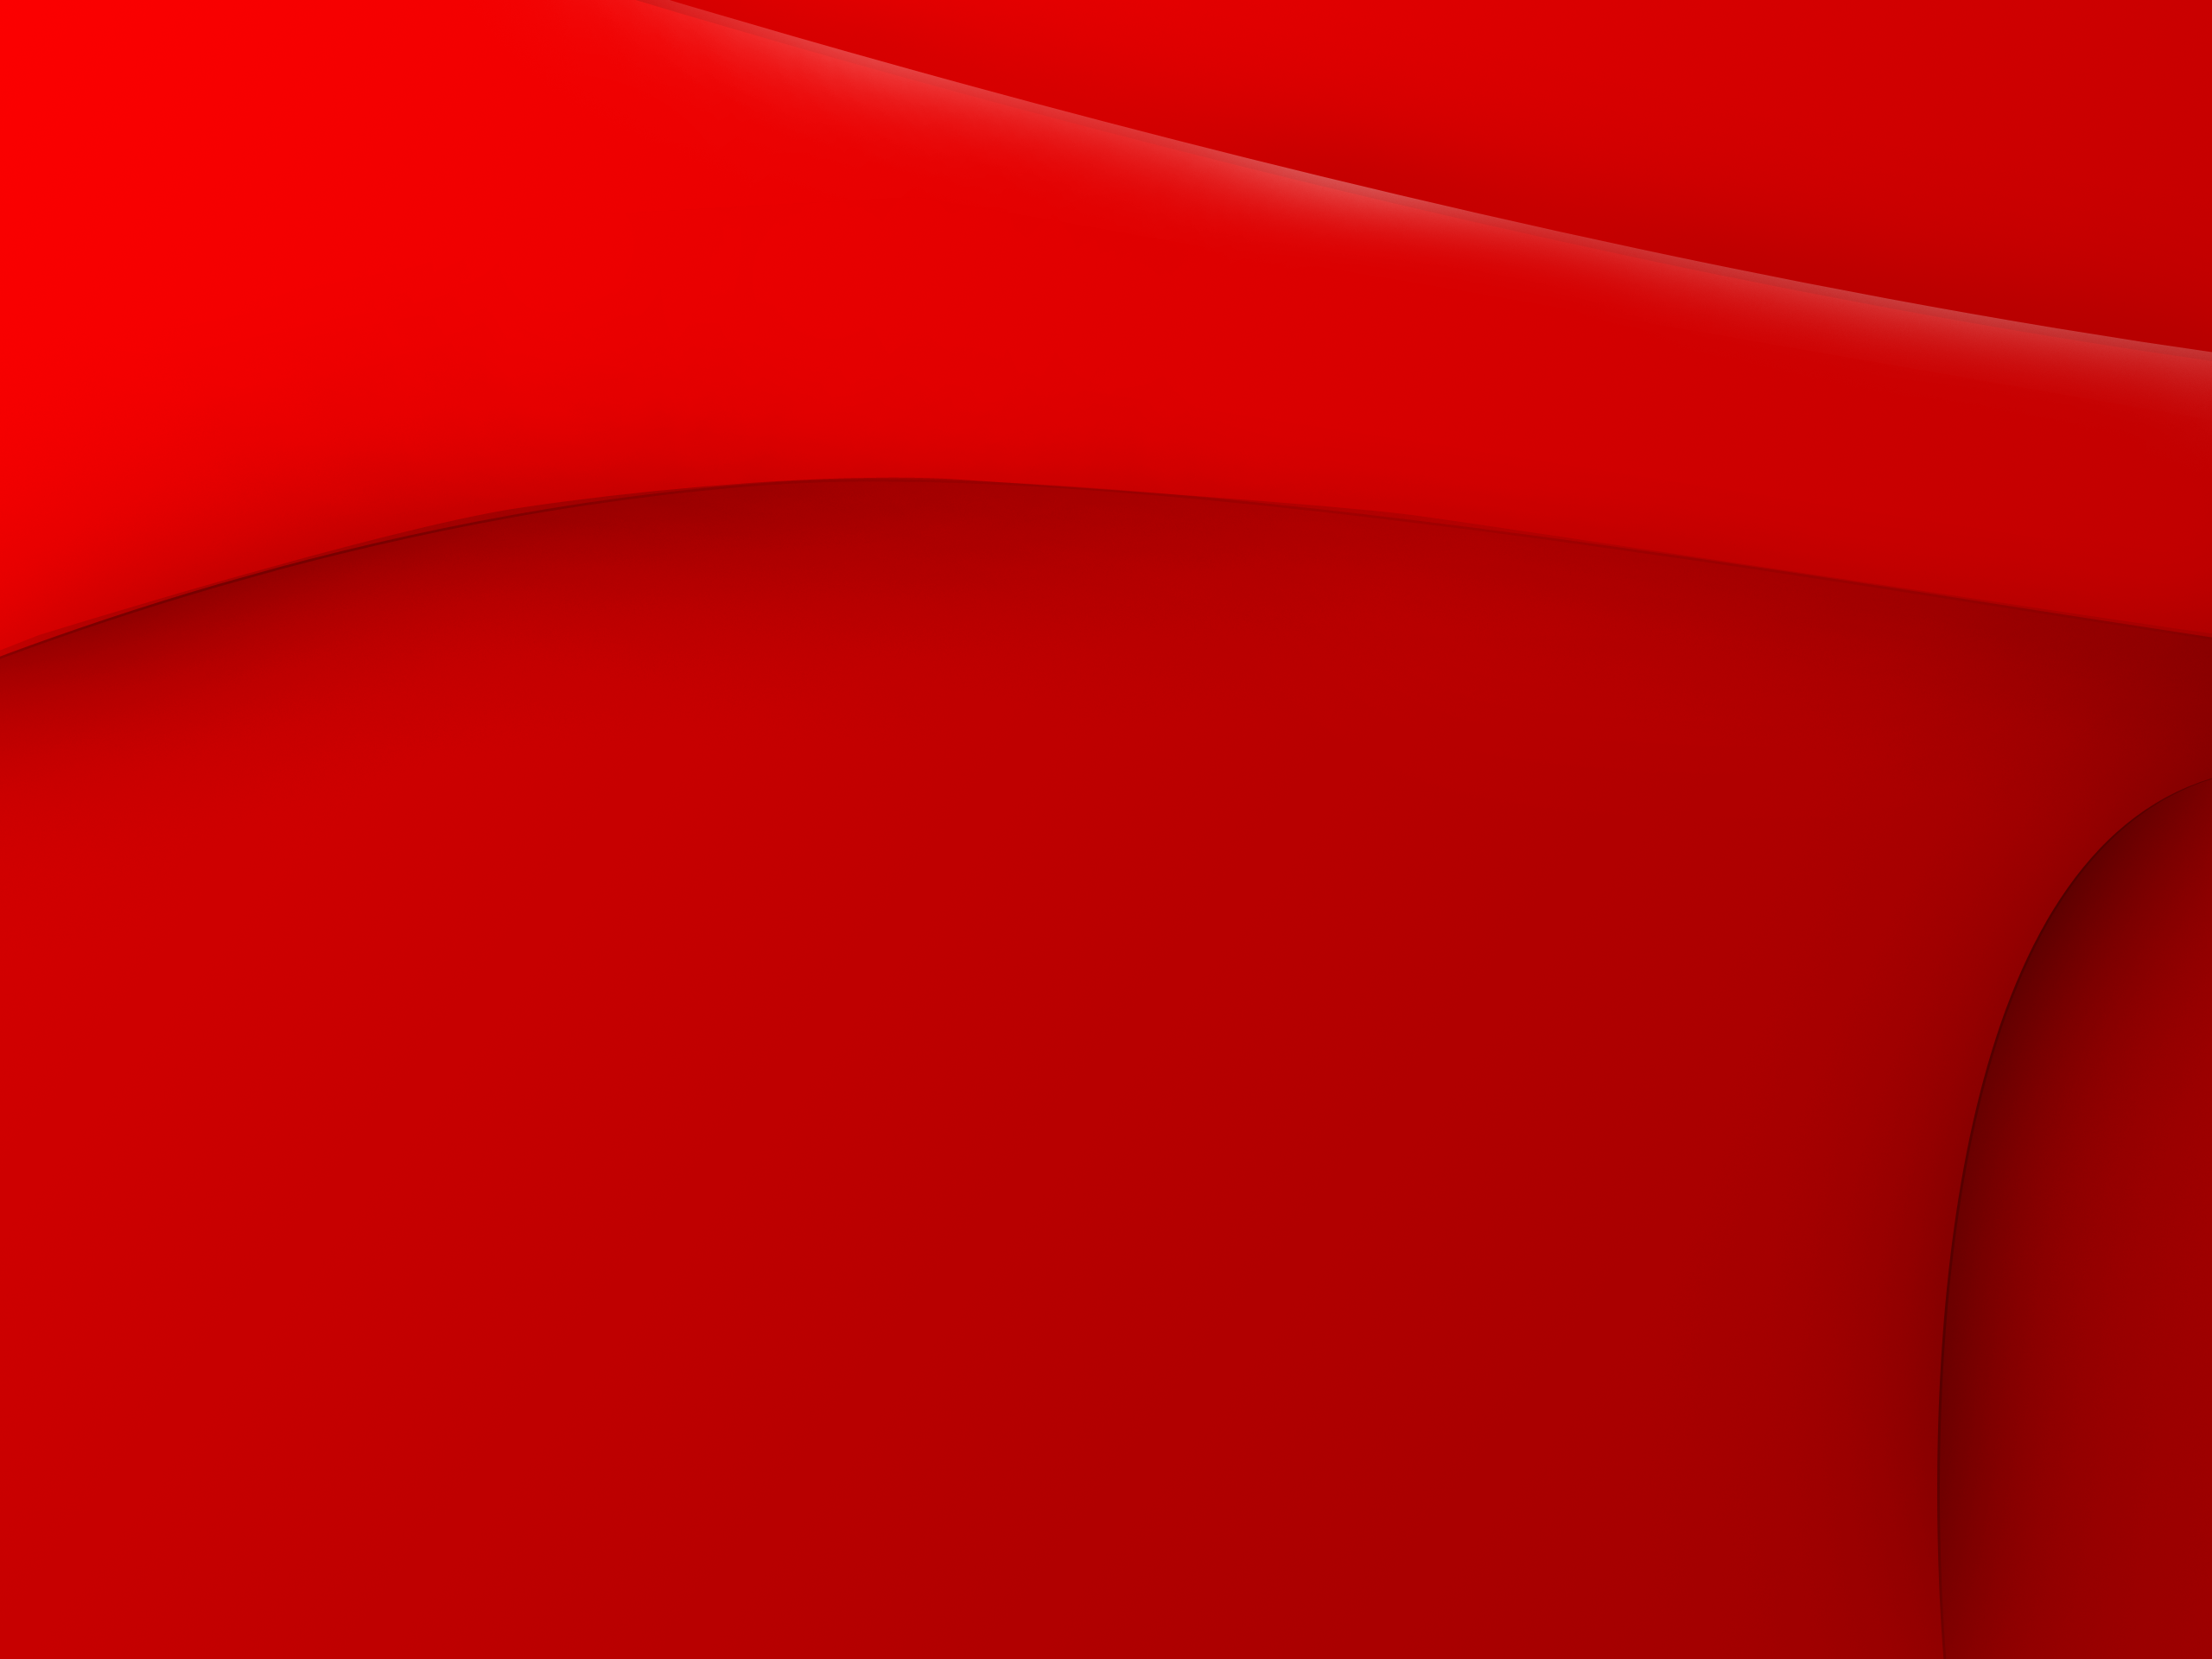 wallpaper abstract red by too fast customization wallpaper abstract ...: too-fast.deviantart.com/art/Wallpaper-Abstract-Red-148662291